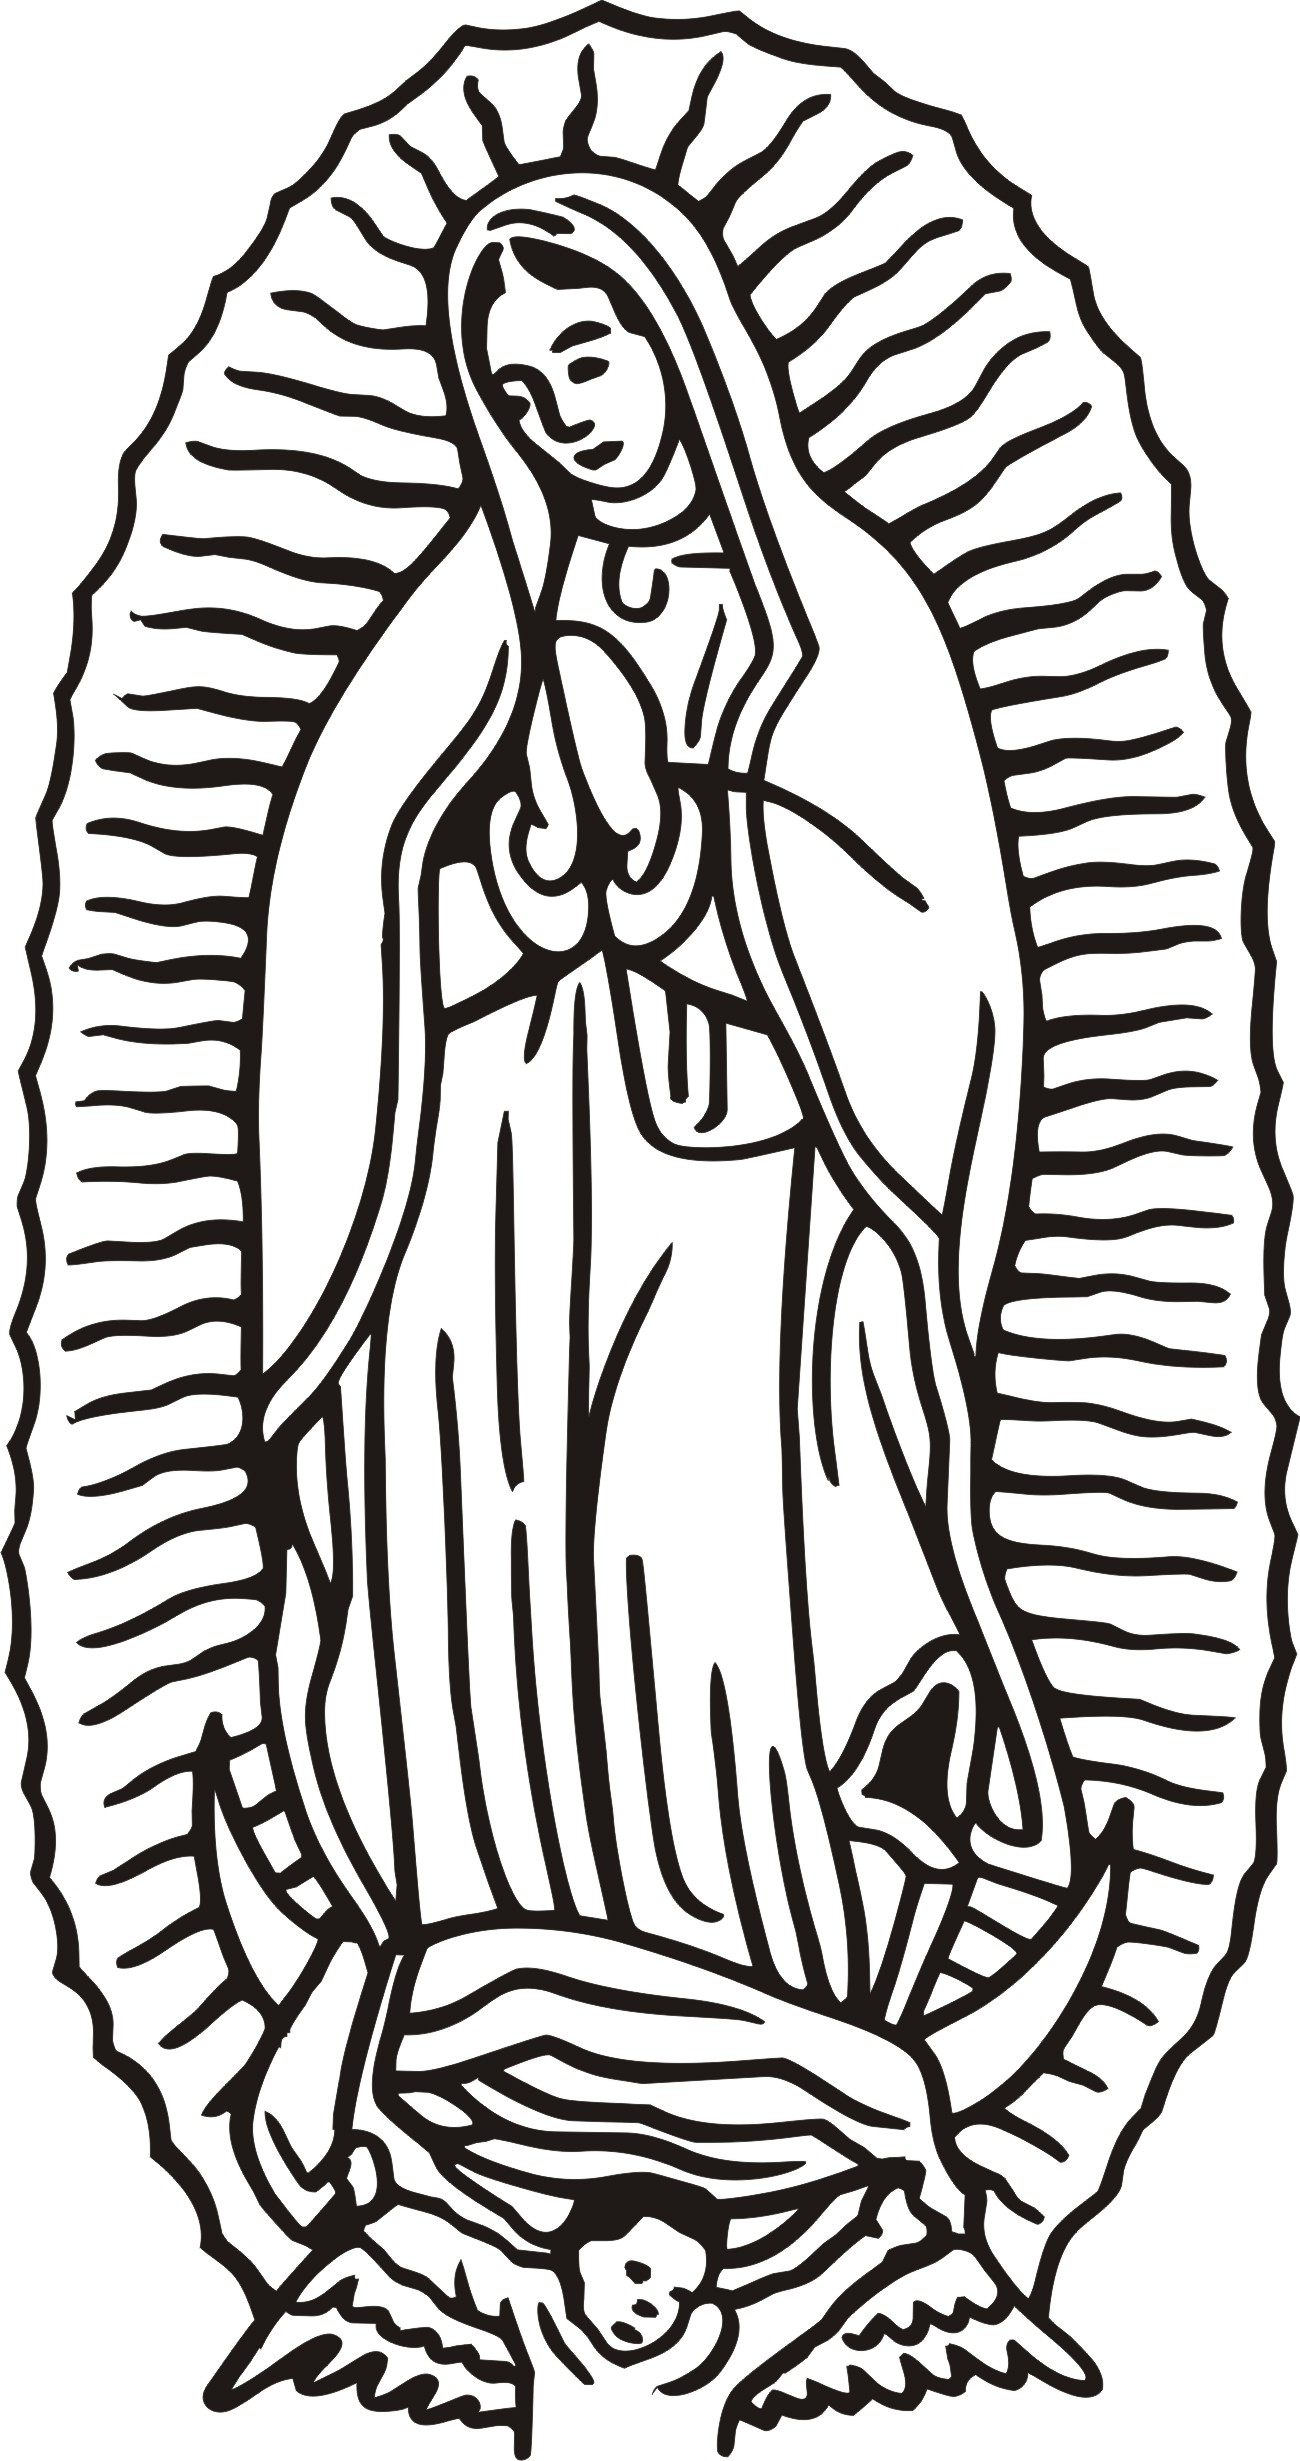 Line Drawing Lady : Our lady of guadalupe coloring page home